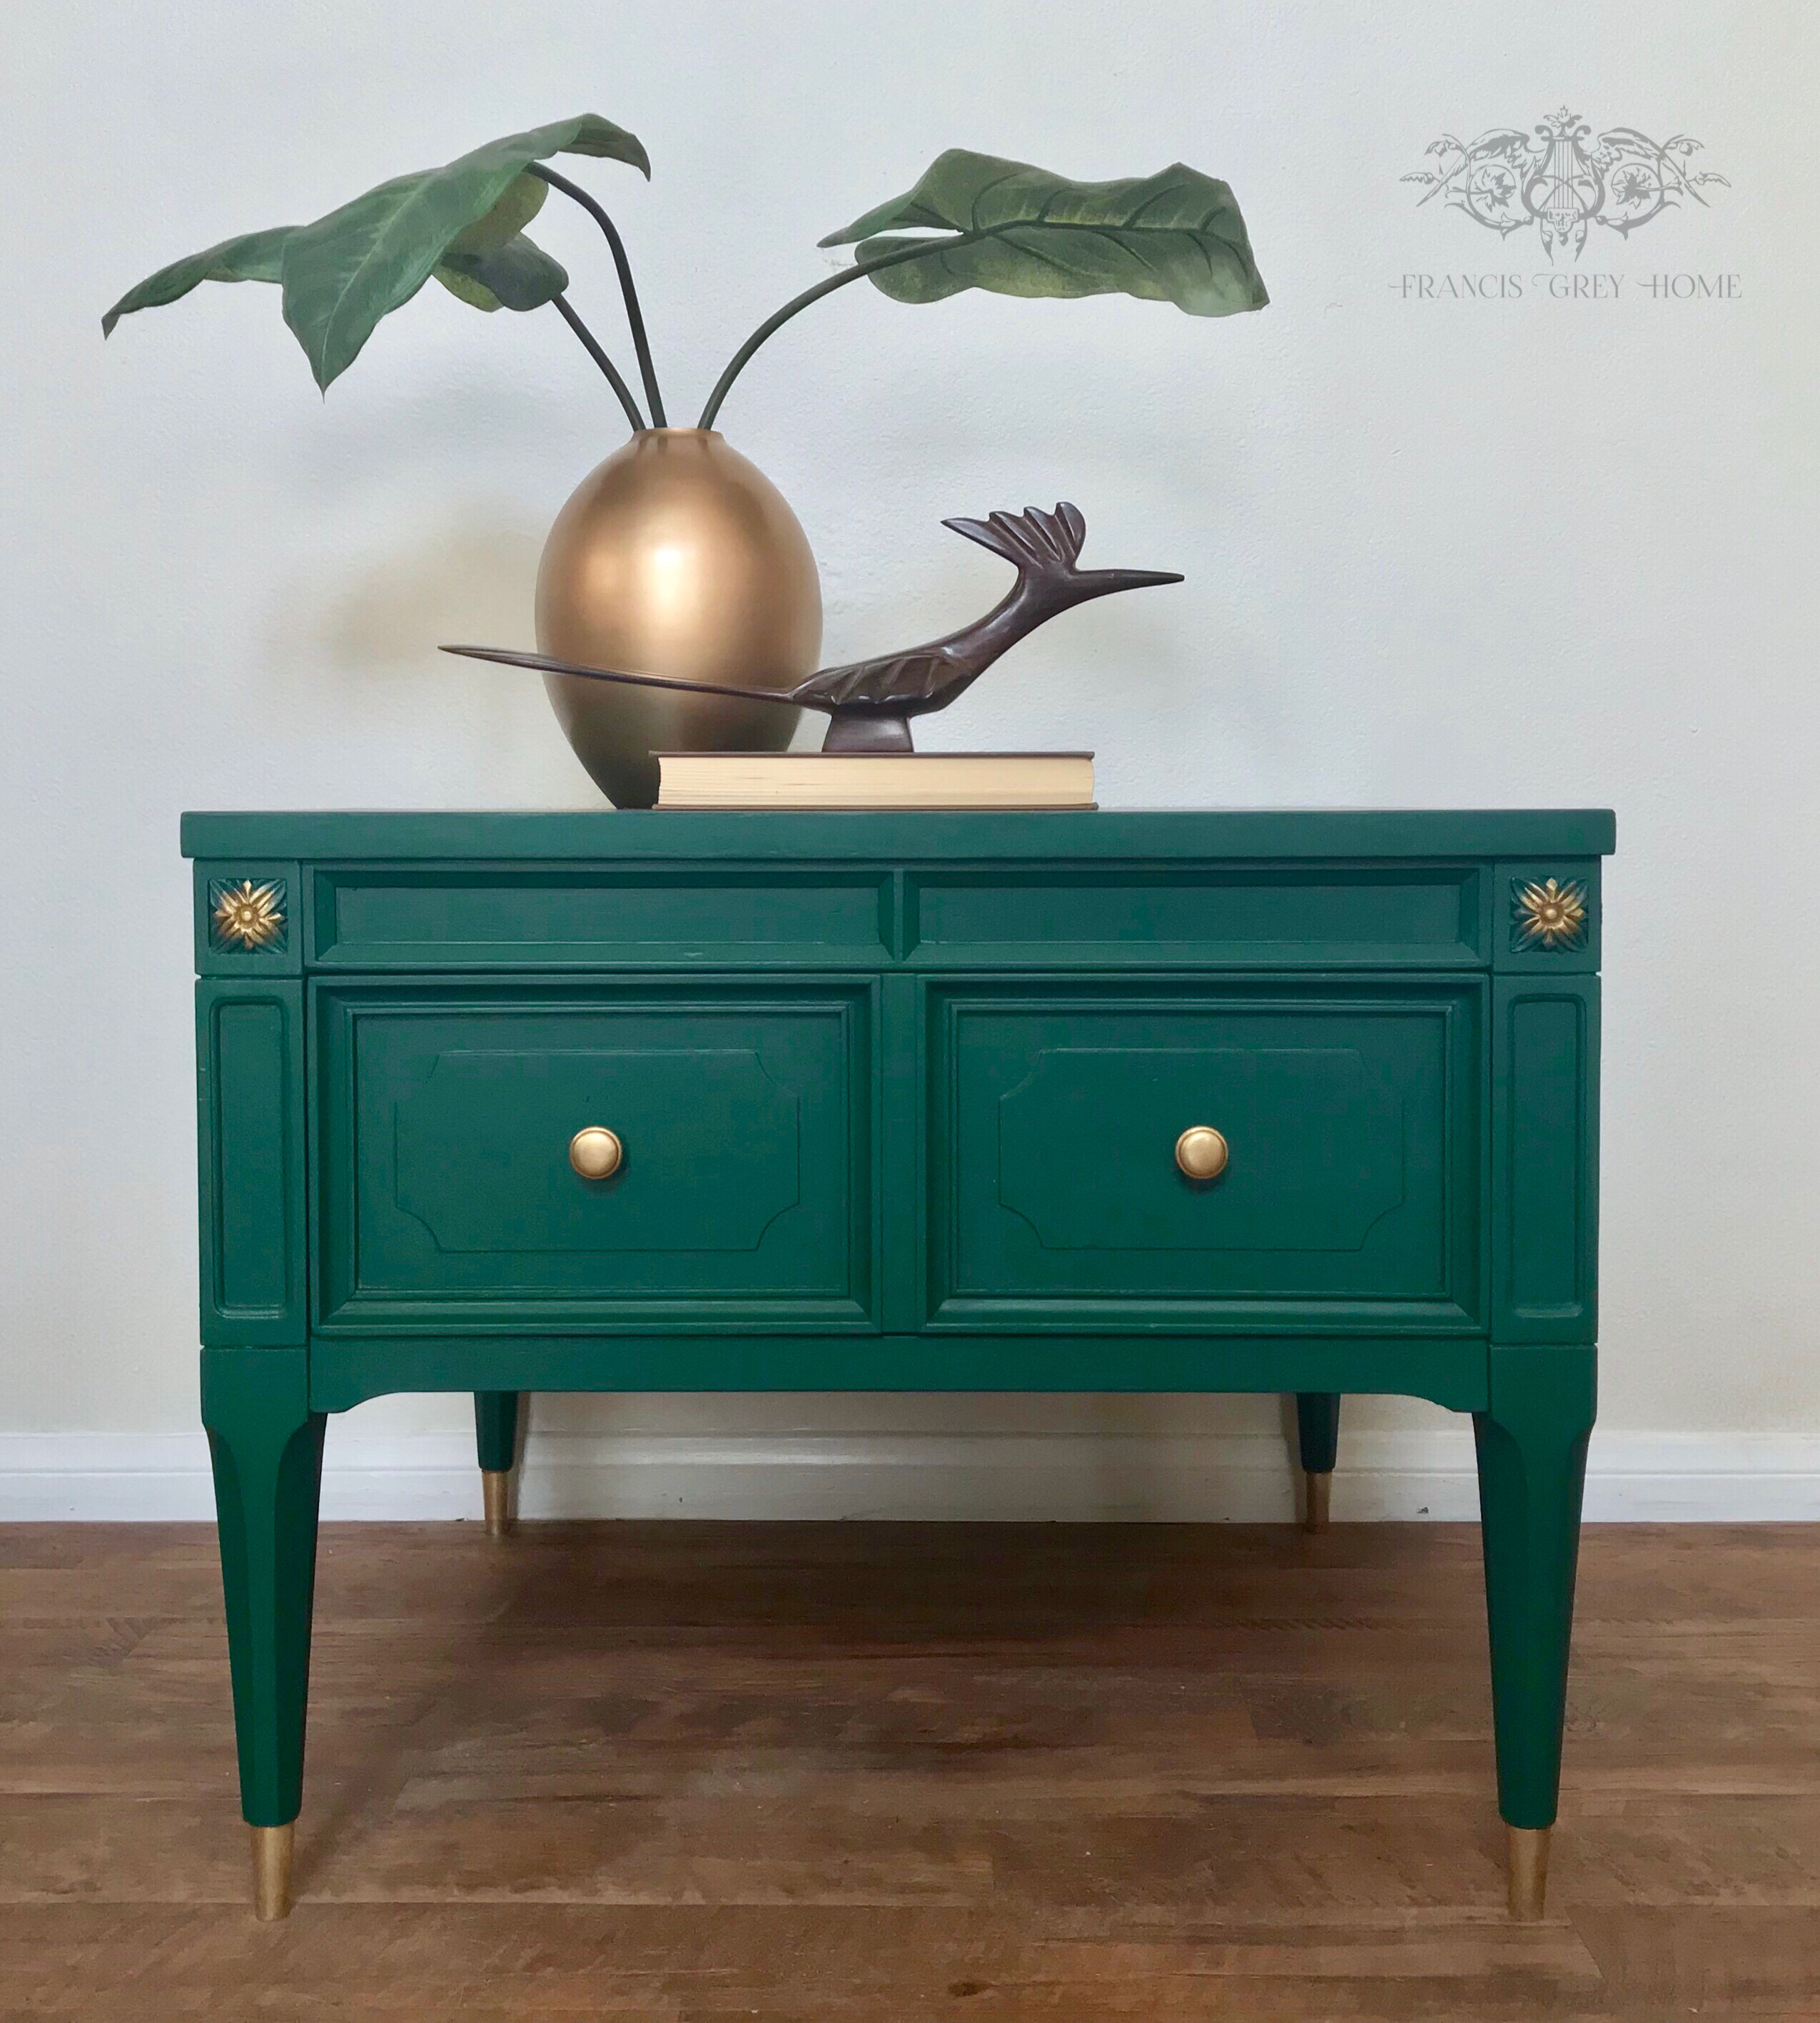 jockboymusic lamp tables with storage best mcm end table painted mid century modern emerald green mersman drawer value small bench seat outdoor cover round wood and metal bedroom